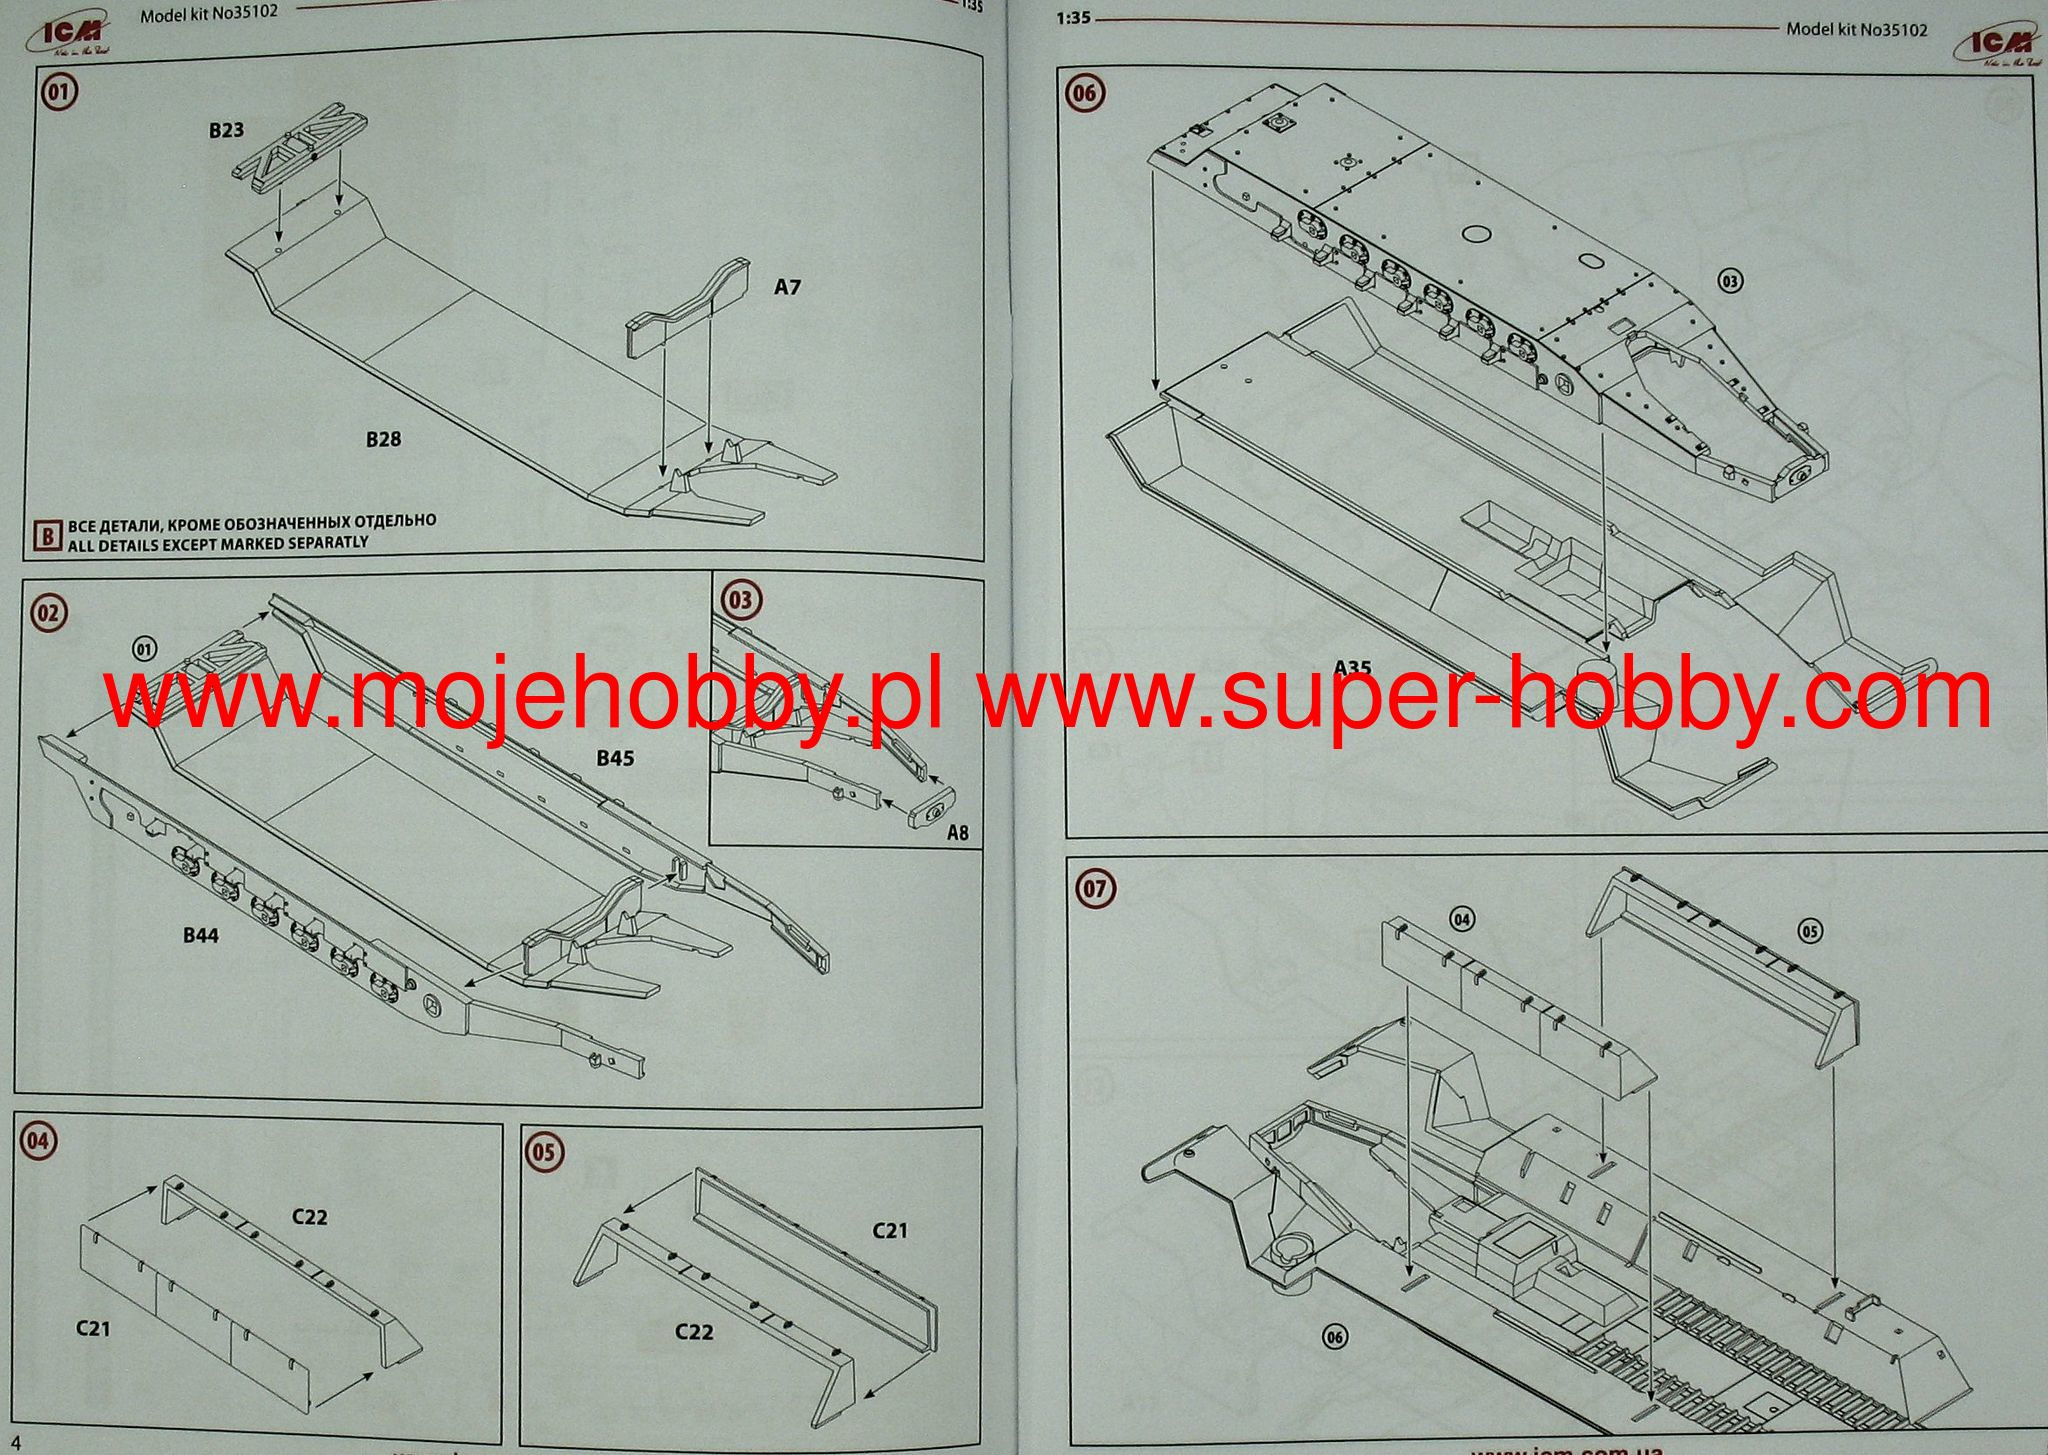 Icm 251 Wiring Diagram Worksheet And German Symbols On Diagrams Sd Kfz 6 Ausf A Wwii Armoured Command Vehicle 35102 Rh Super Hobby Com Simple Hvac